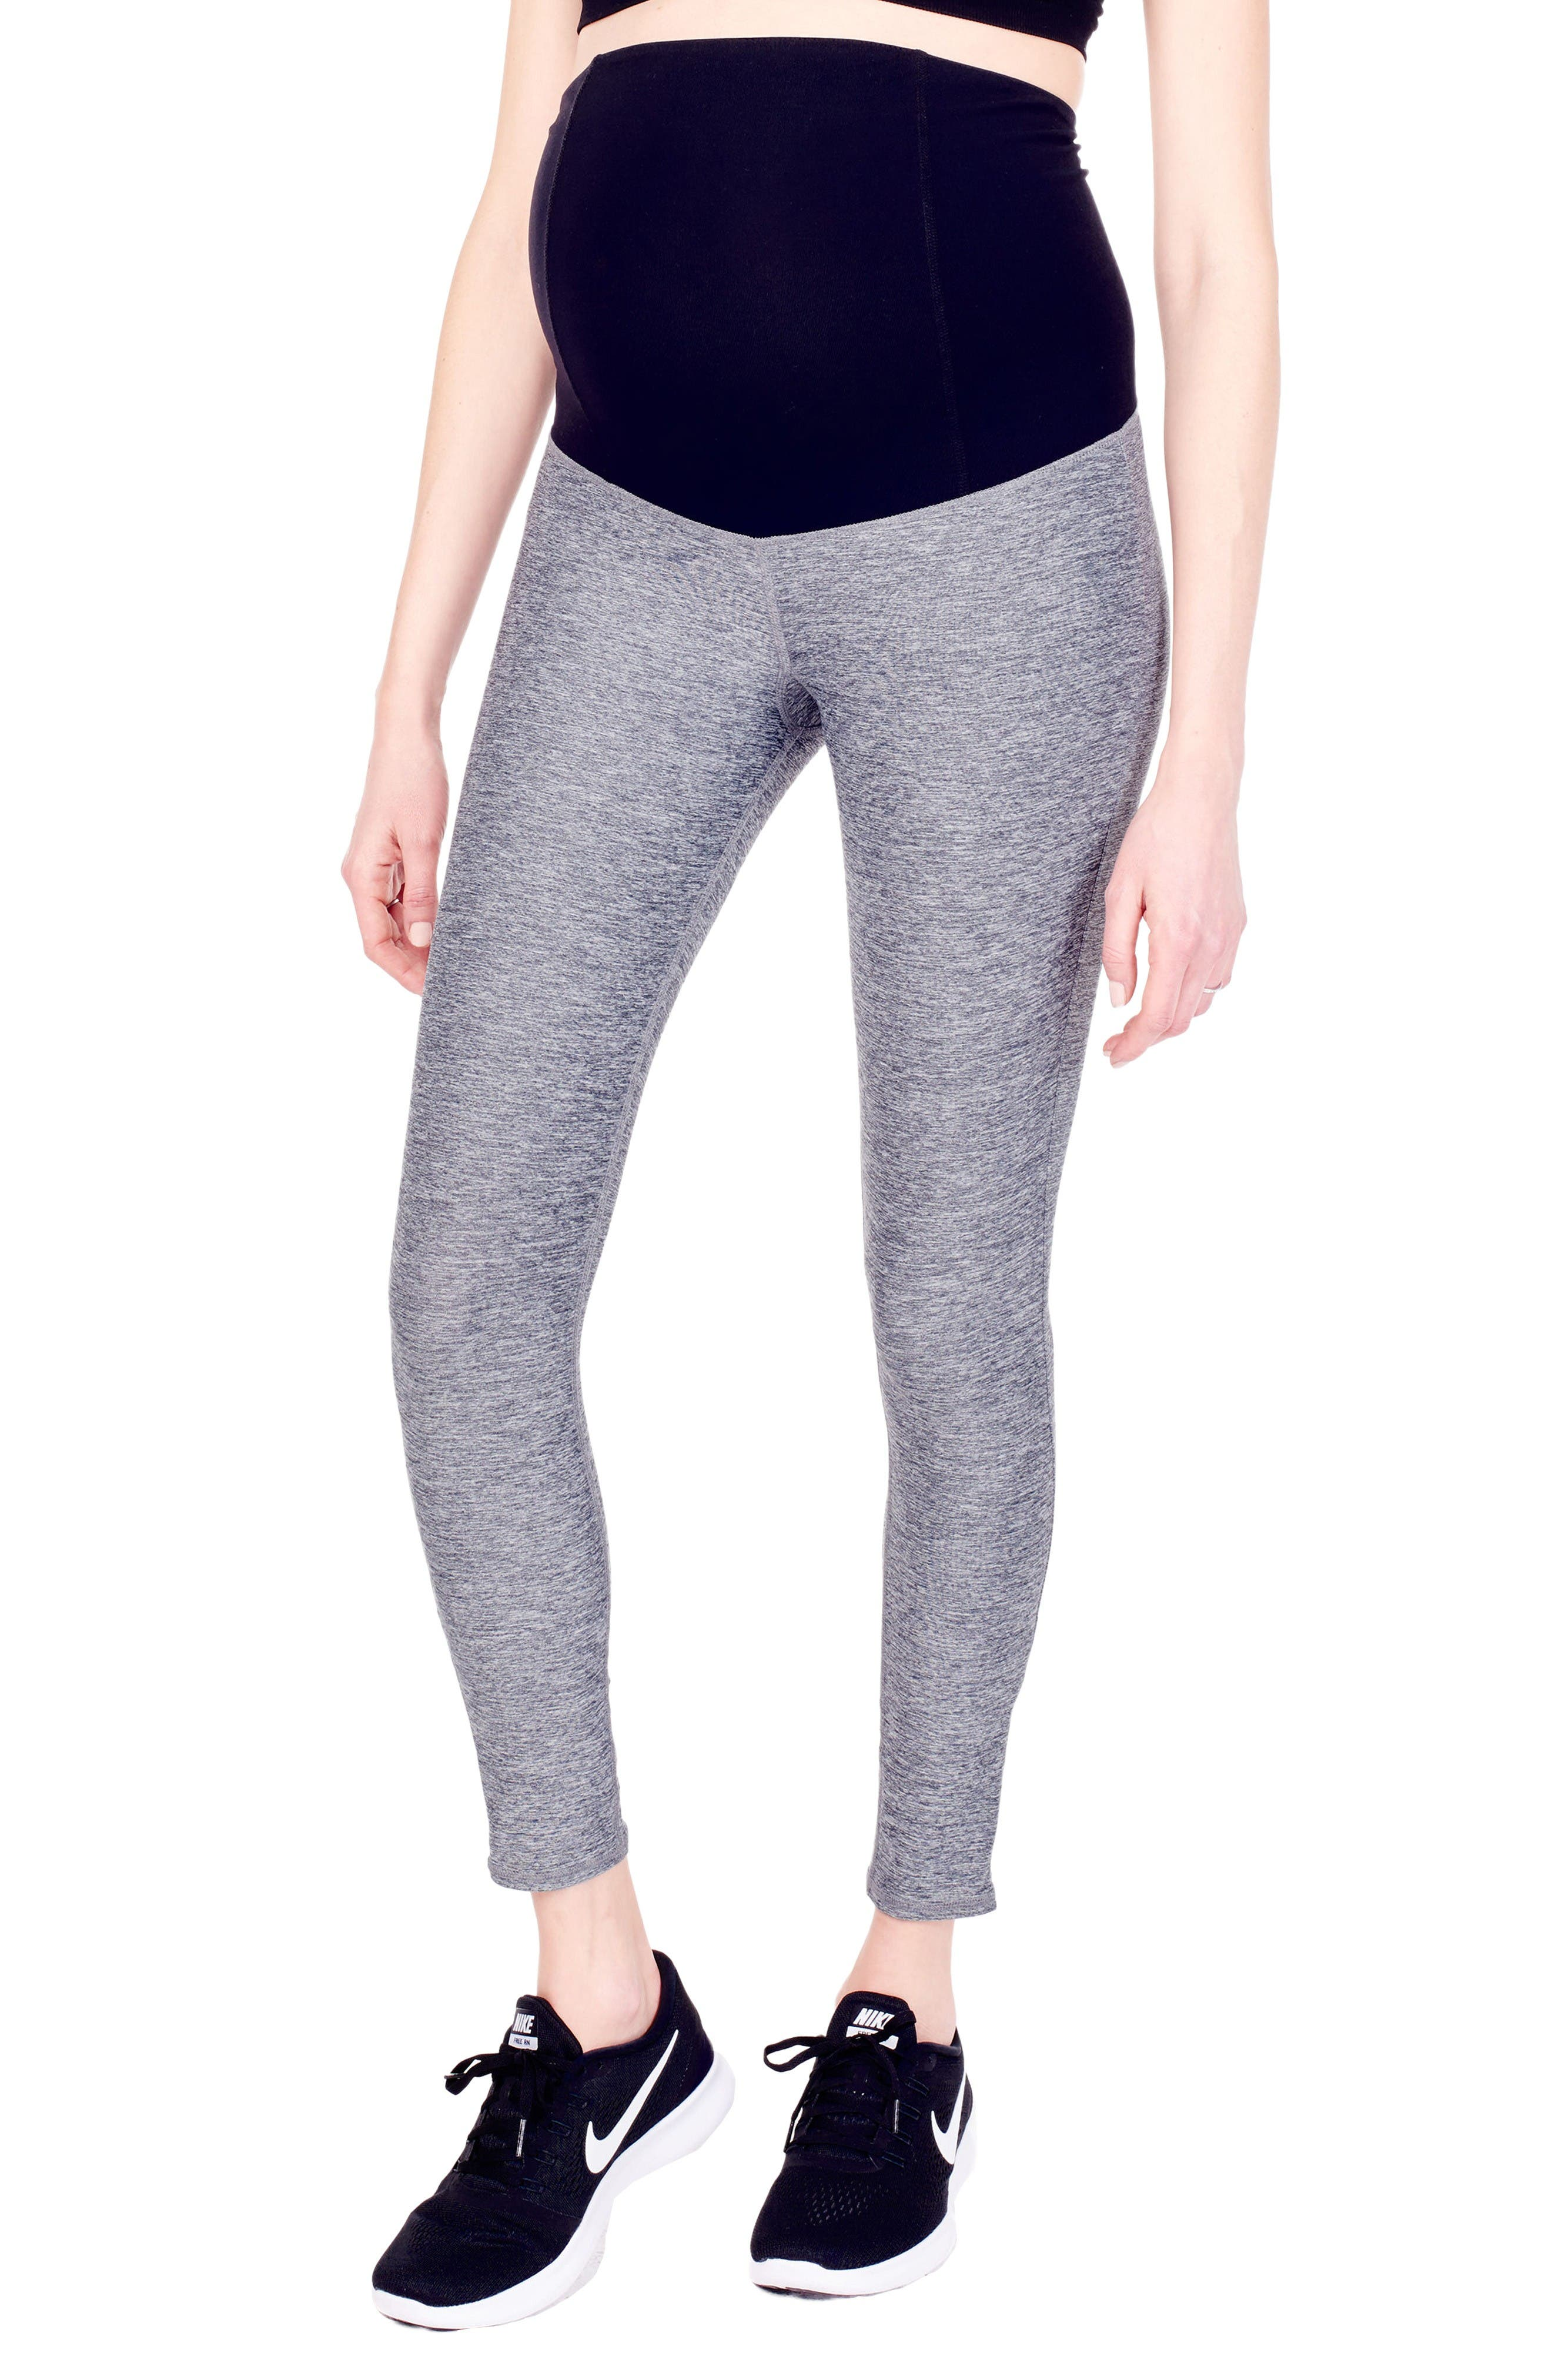 Alternate Image 1 Selected - Ingrid & Isabel® 'Active' Maternity Leggings with Crossover Panel